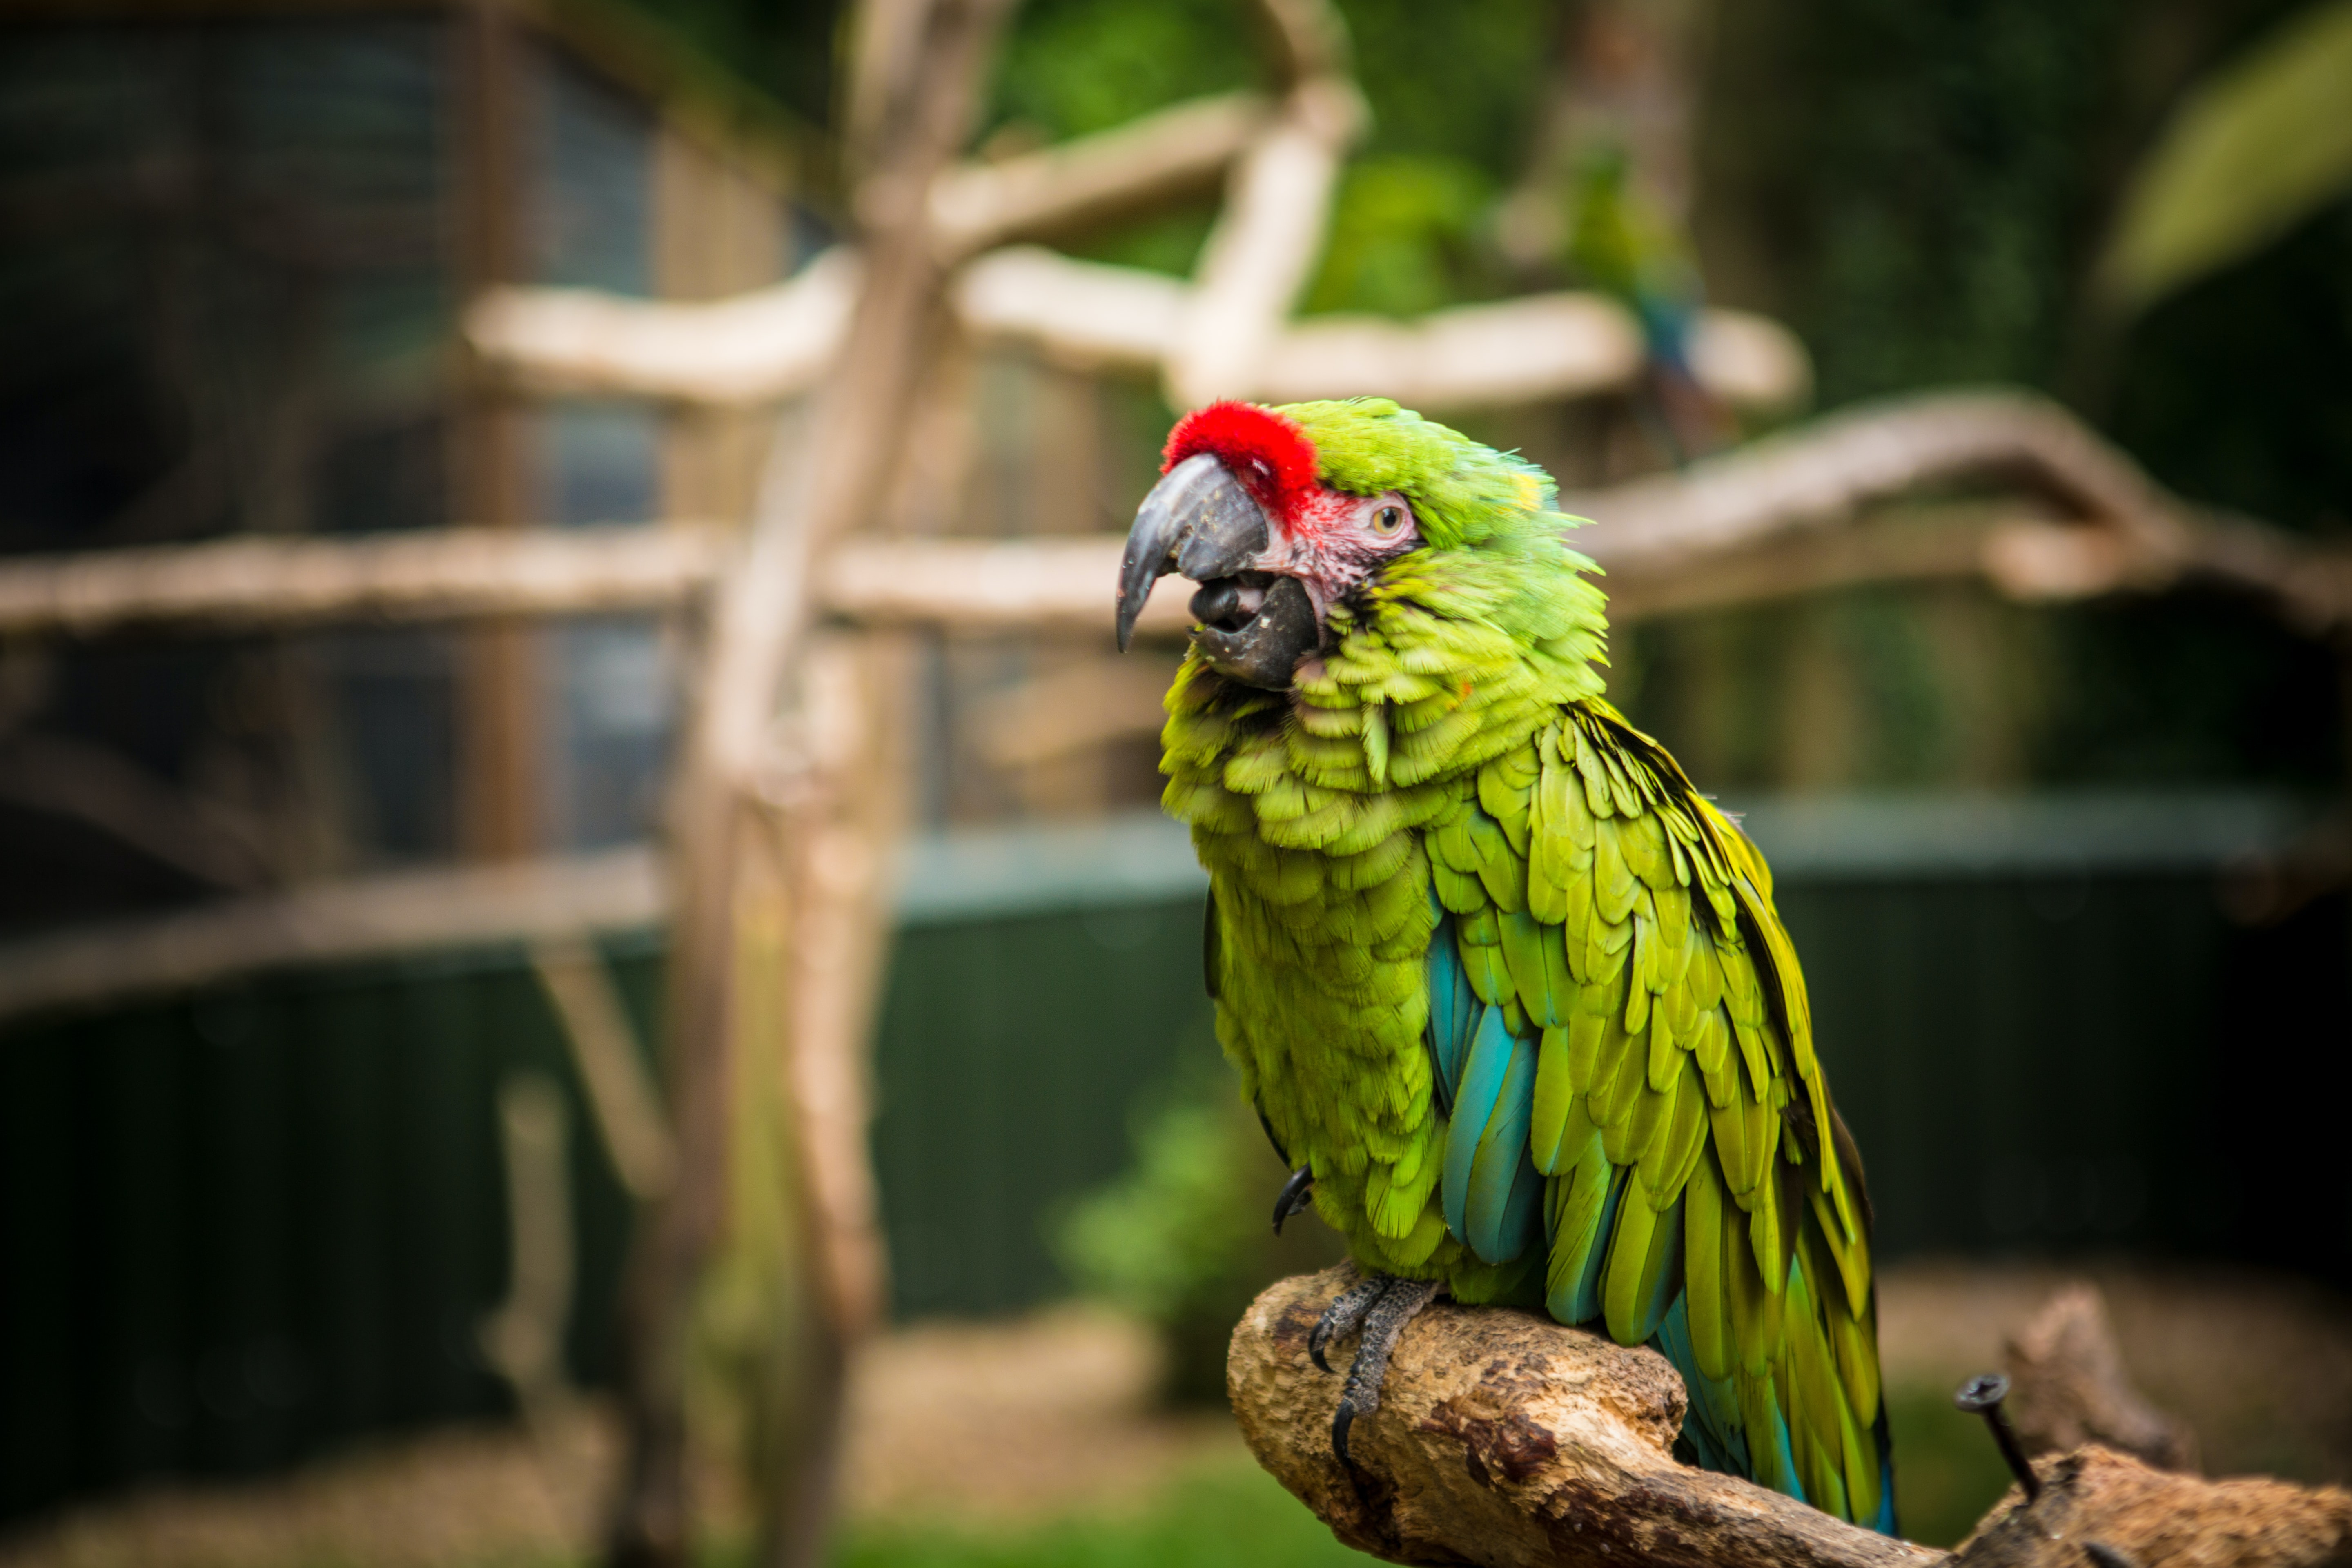 focused photo of a green macaw